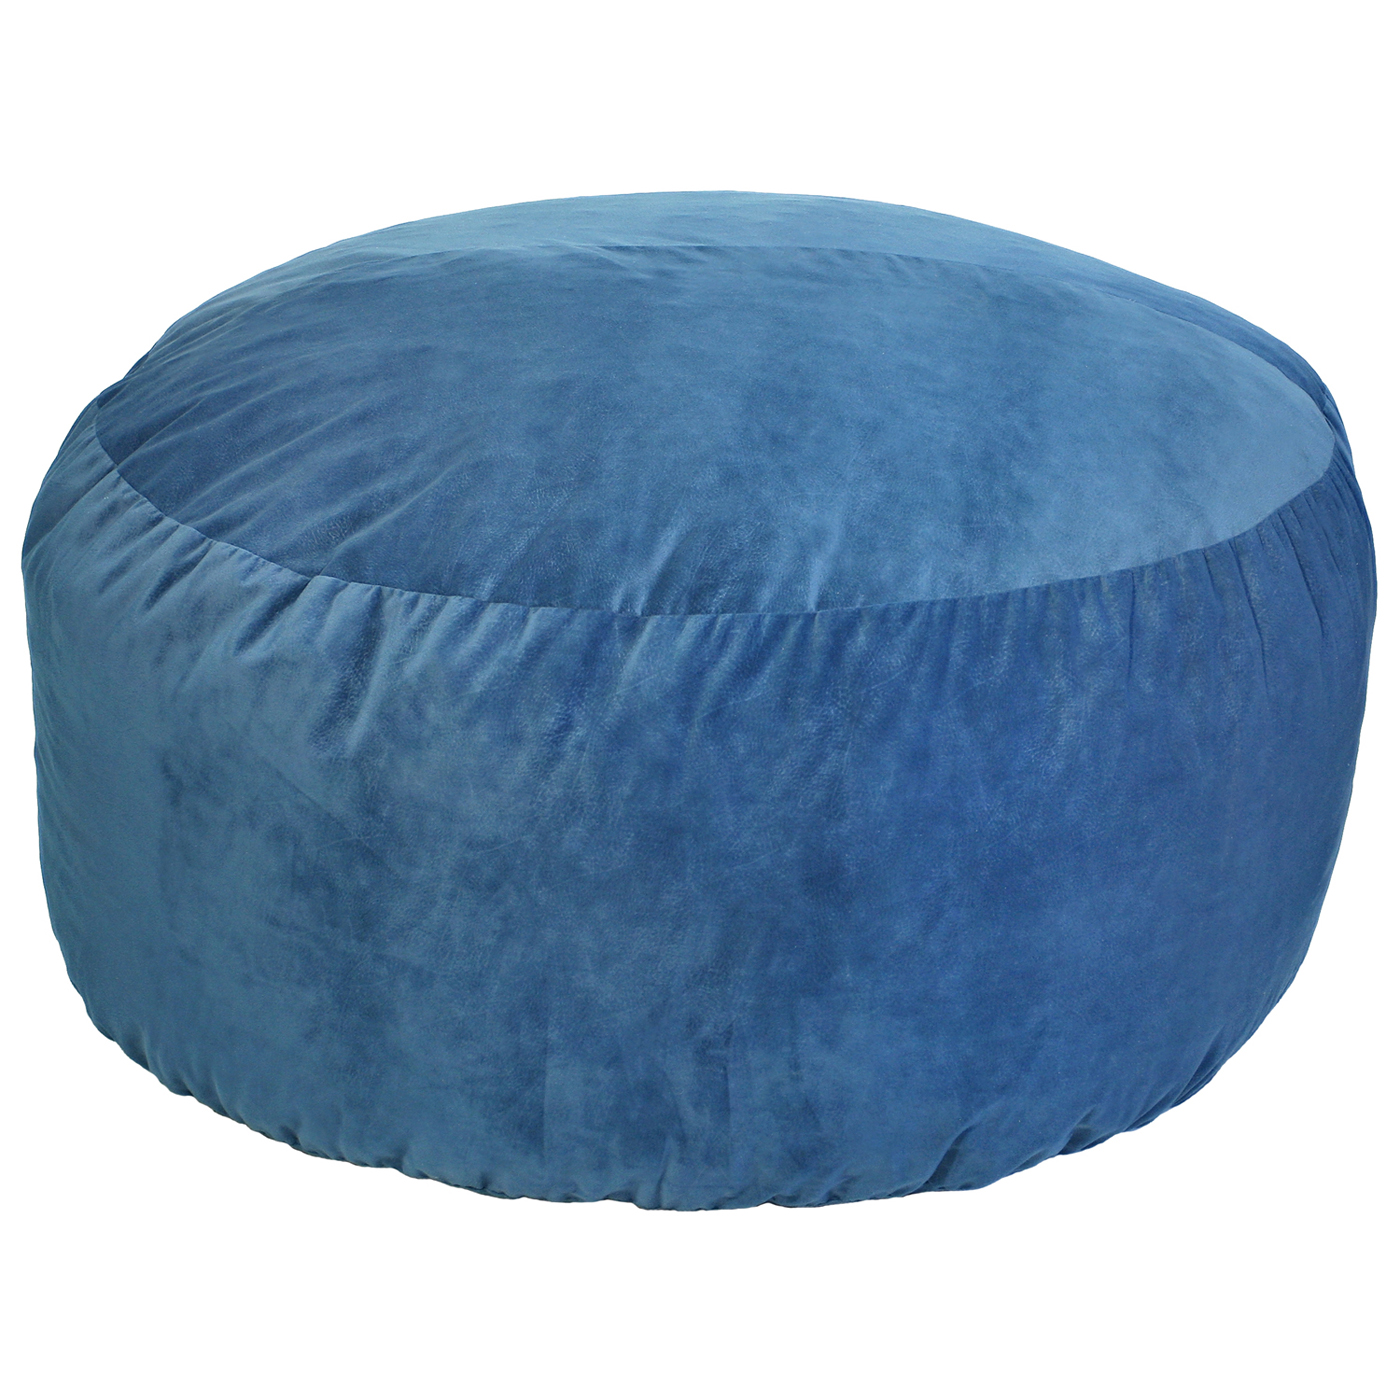 foam bean bag chair small wooden dining table and chairs 5 comfort cloud by hudson in